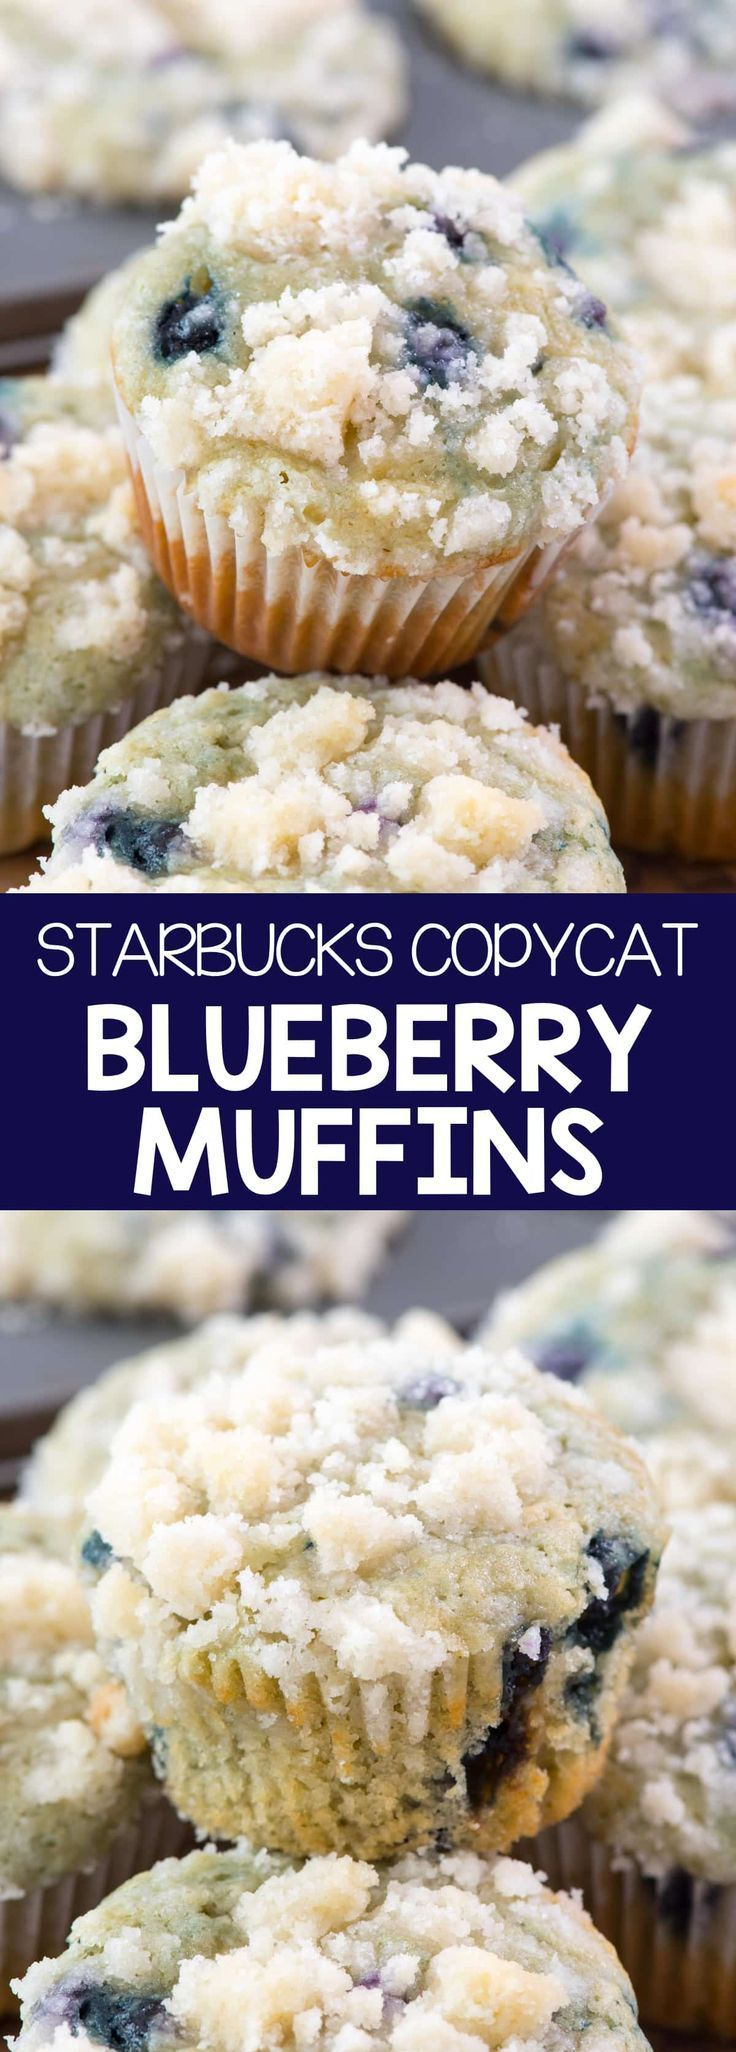 Starbucks Copycat Blueberry Muffins Crazy For Crust Recipe Muffin Recipes Blueberry Blueberry Recipes Best Blueberry Muffins